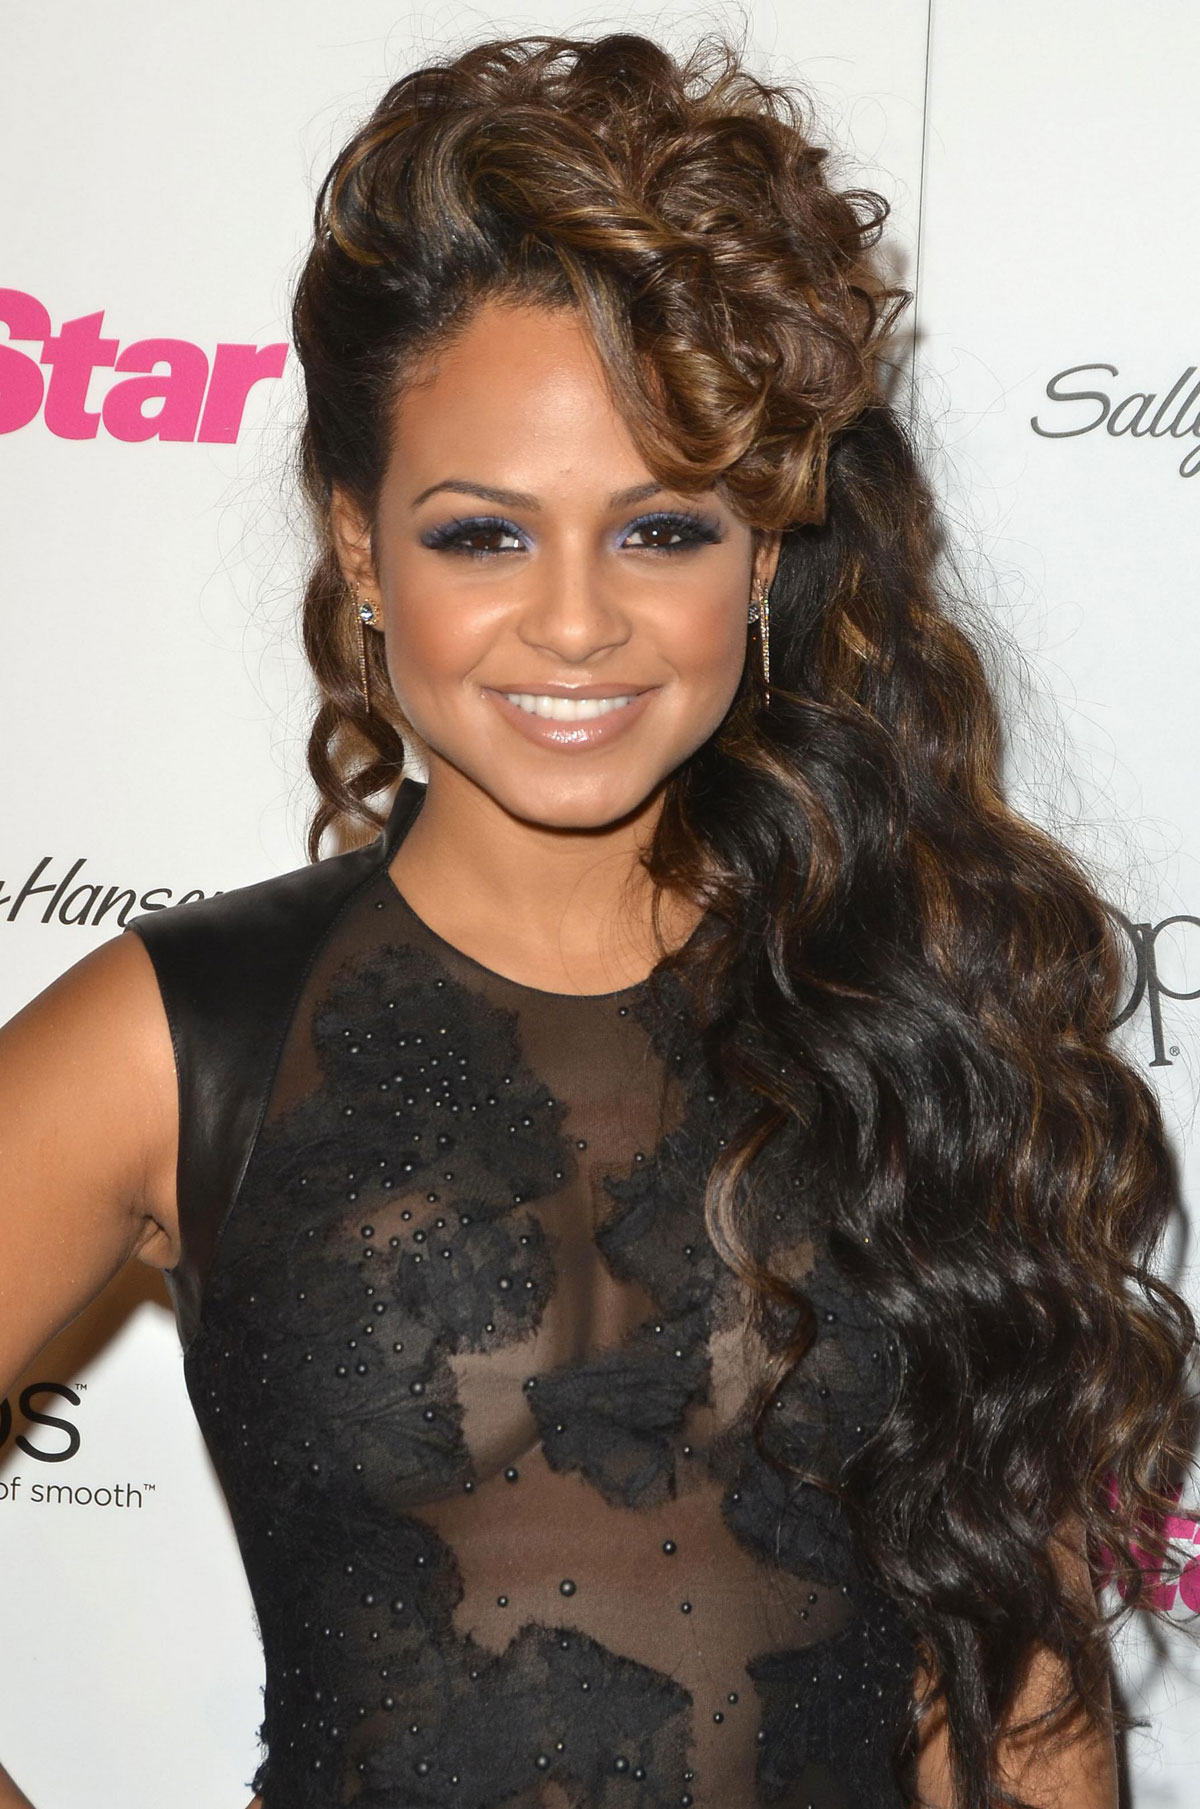 Christina Milian - Picture Gallery